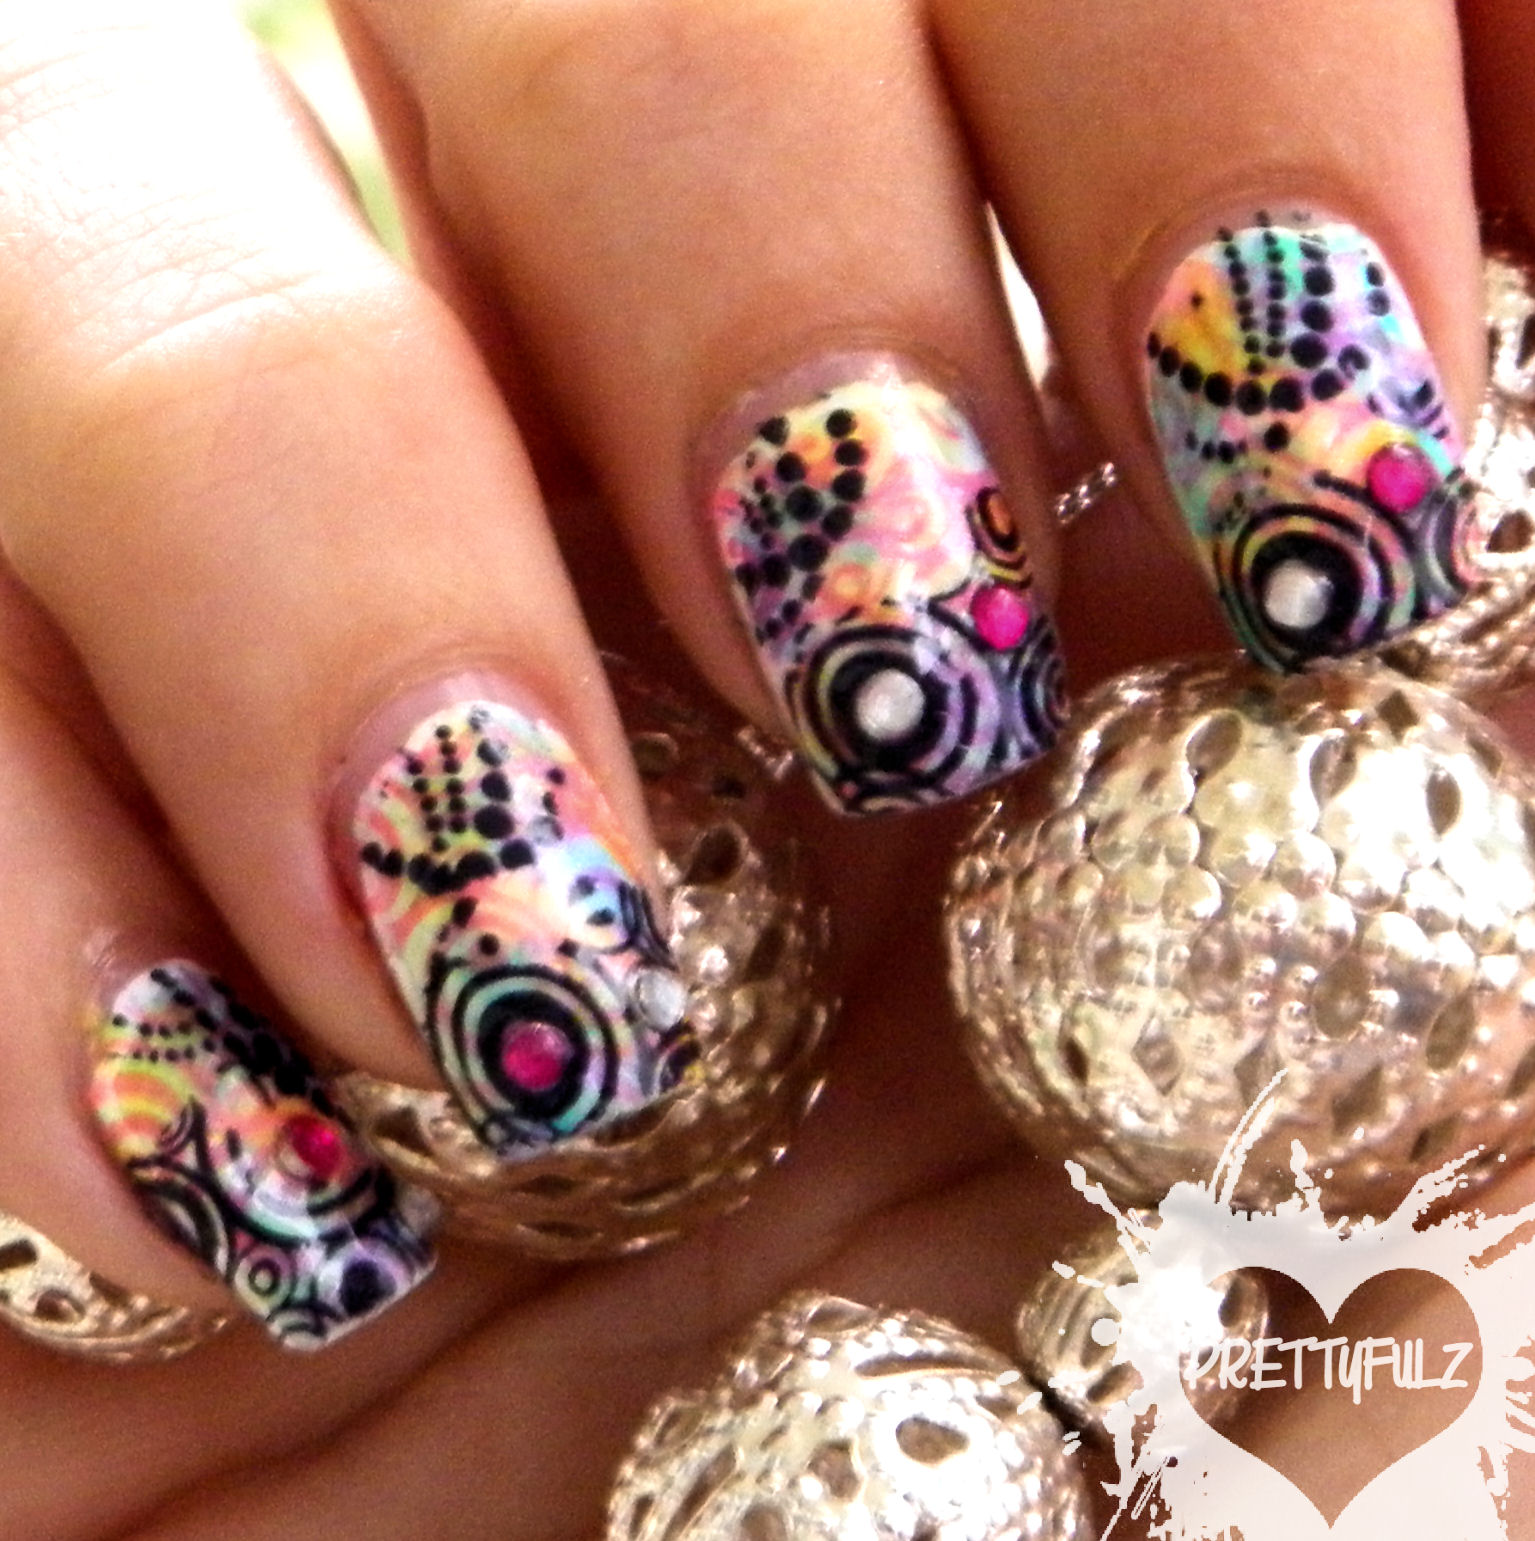 Prettyfulz: Nail Art Challenge: Wallpaper/Background